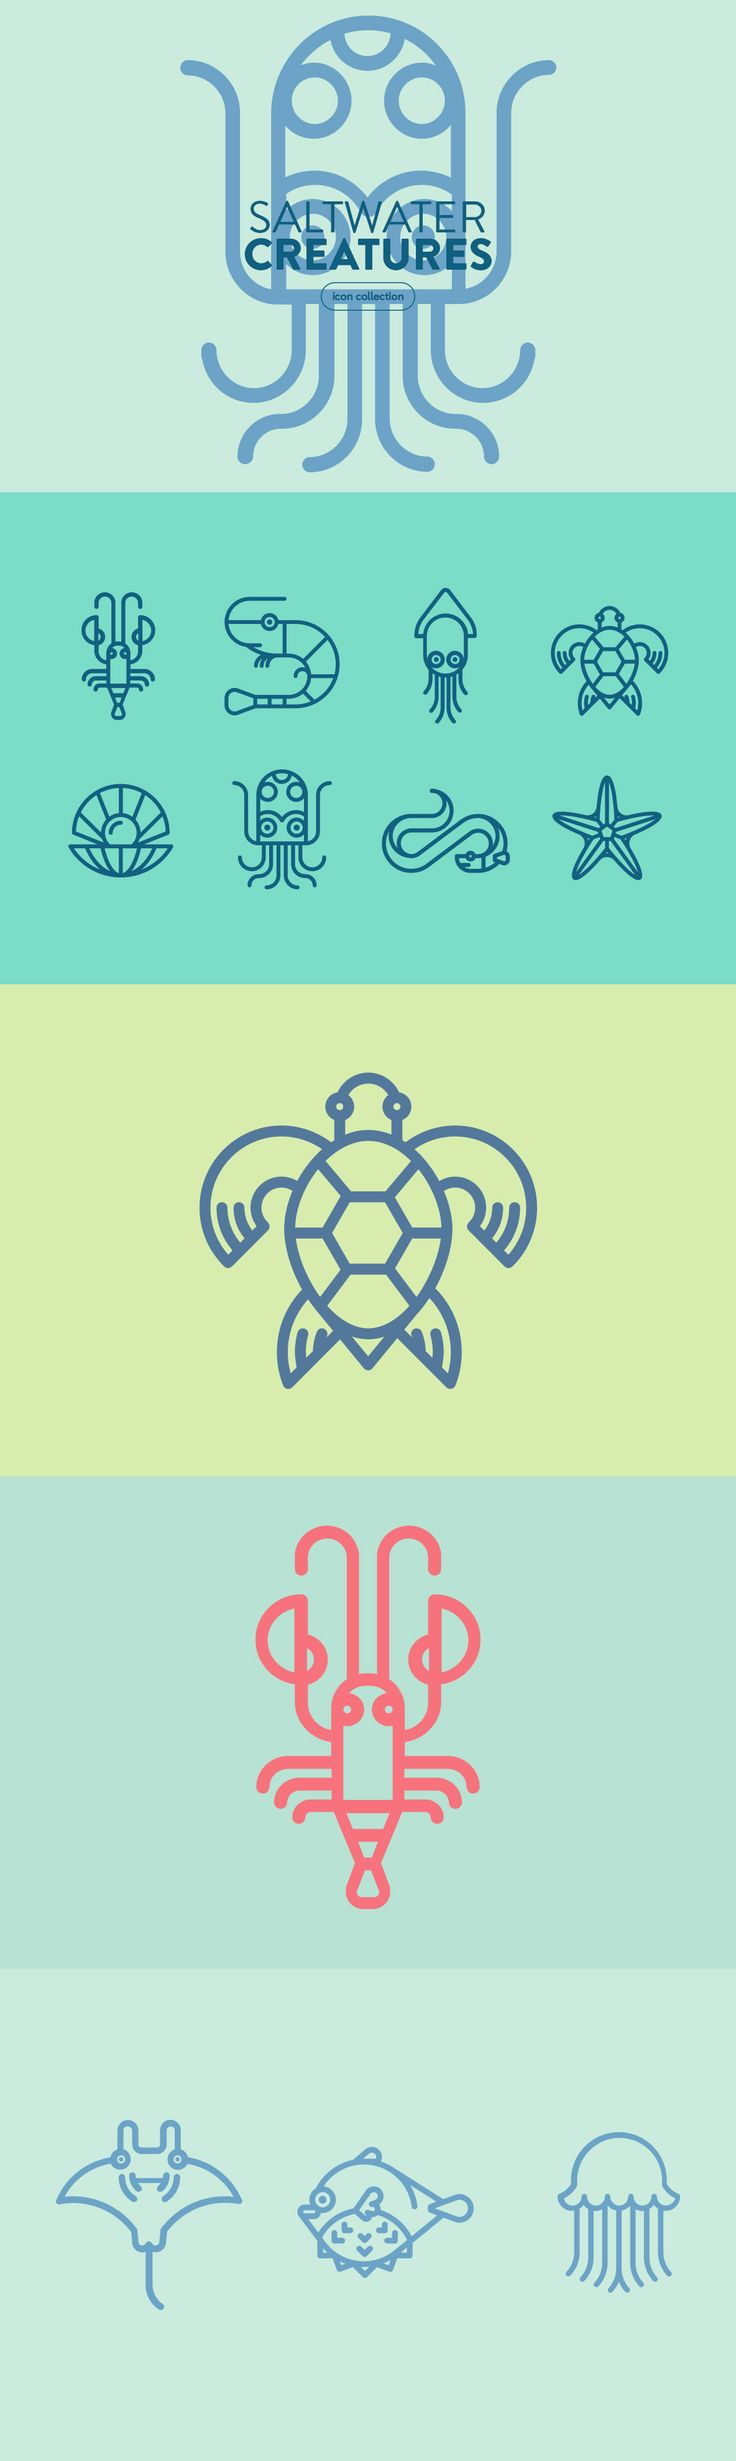 Saltwater Creatures - Graphics - YouWorkForThem